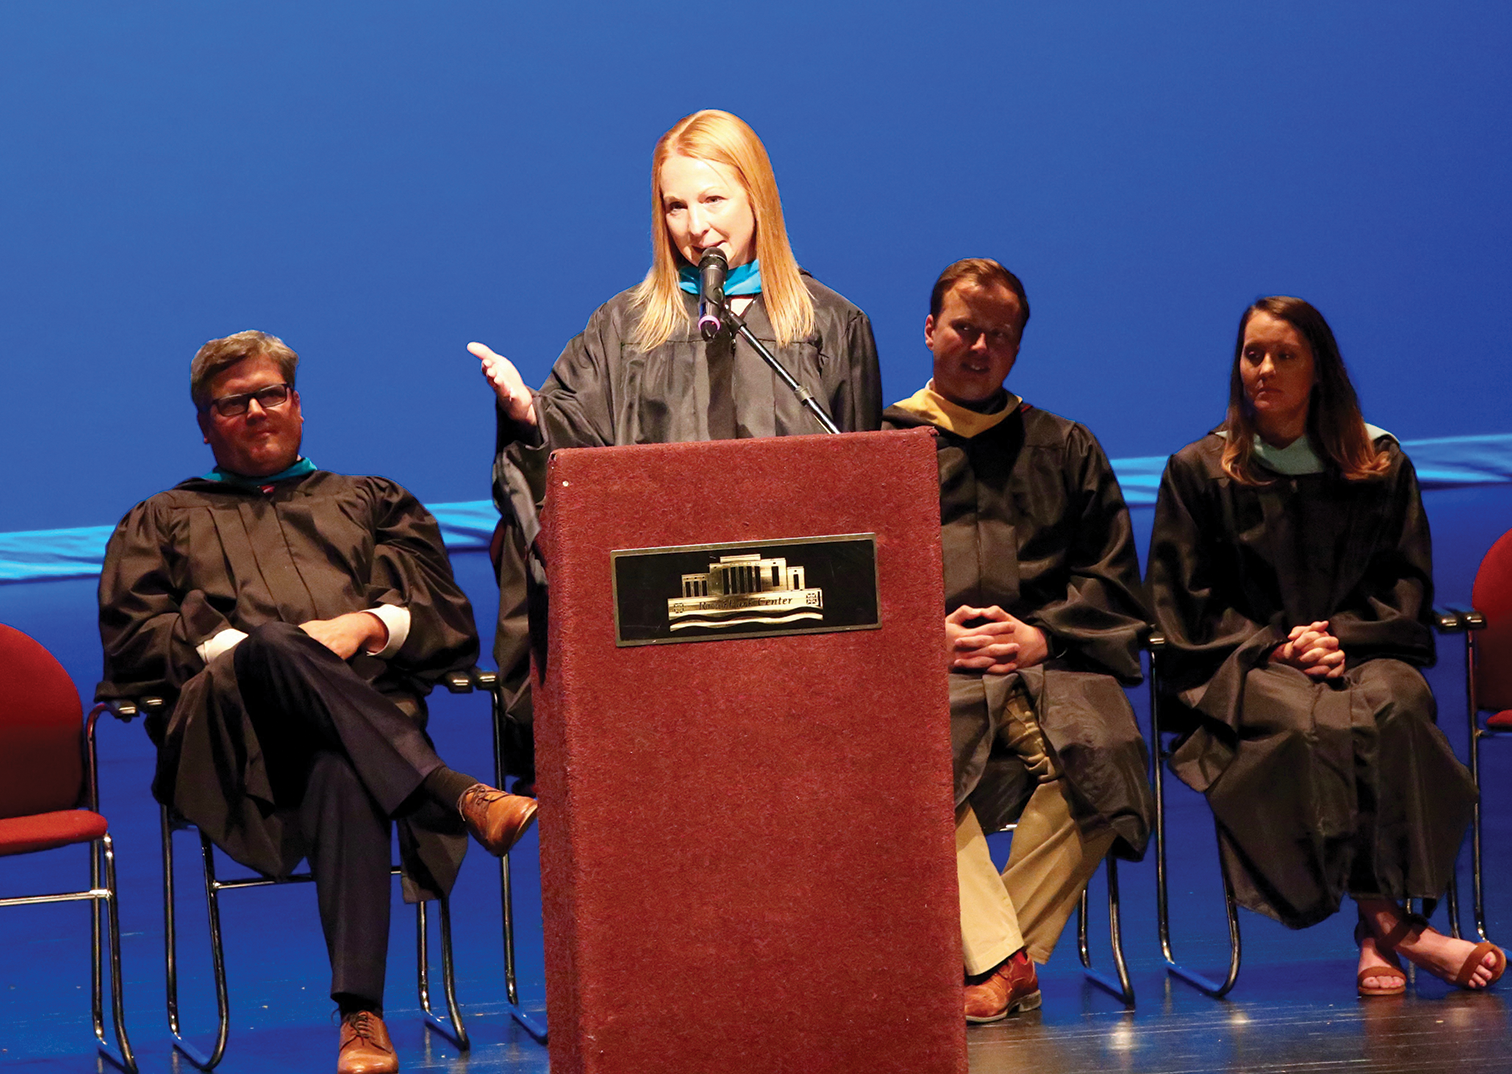 OIA's head teacher, Beth Benjamin, who has been at OIA since the school opened in 2015, speaks at the school's first graduation ceremony. (Photo provided by Owensboro Ind. Schools)